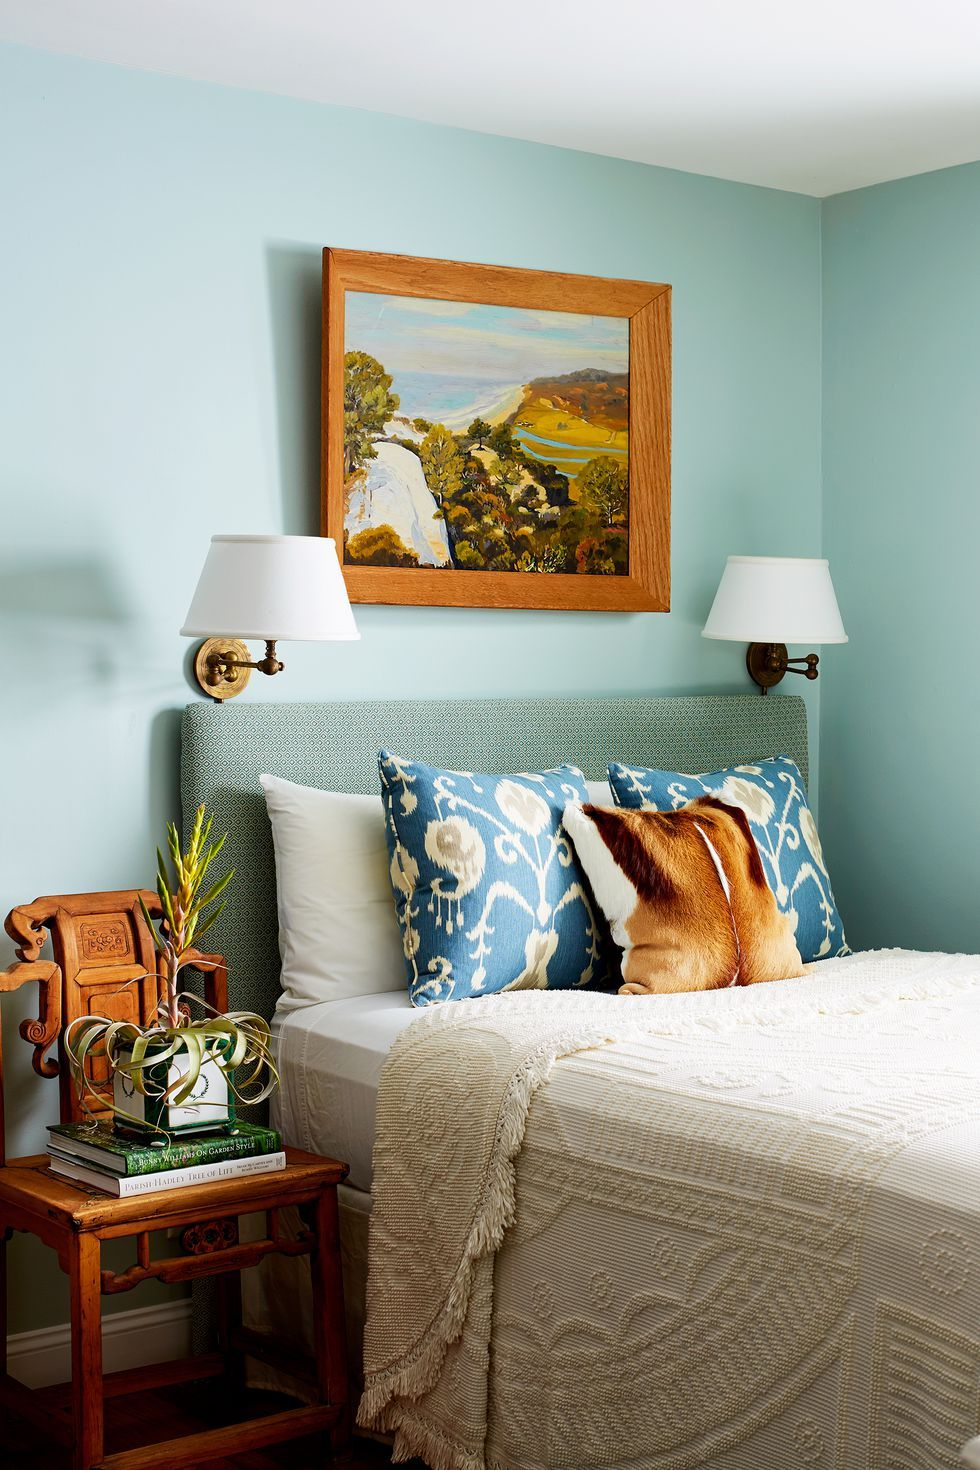 House Beautiful & 20 Best Bedroom Colors 2019 - Relaxing Paint Color Ideas for Bedrooms